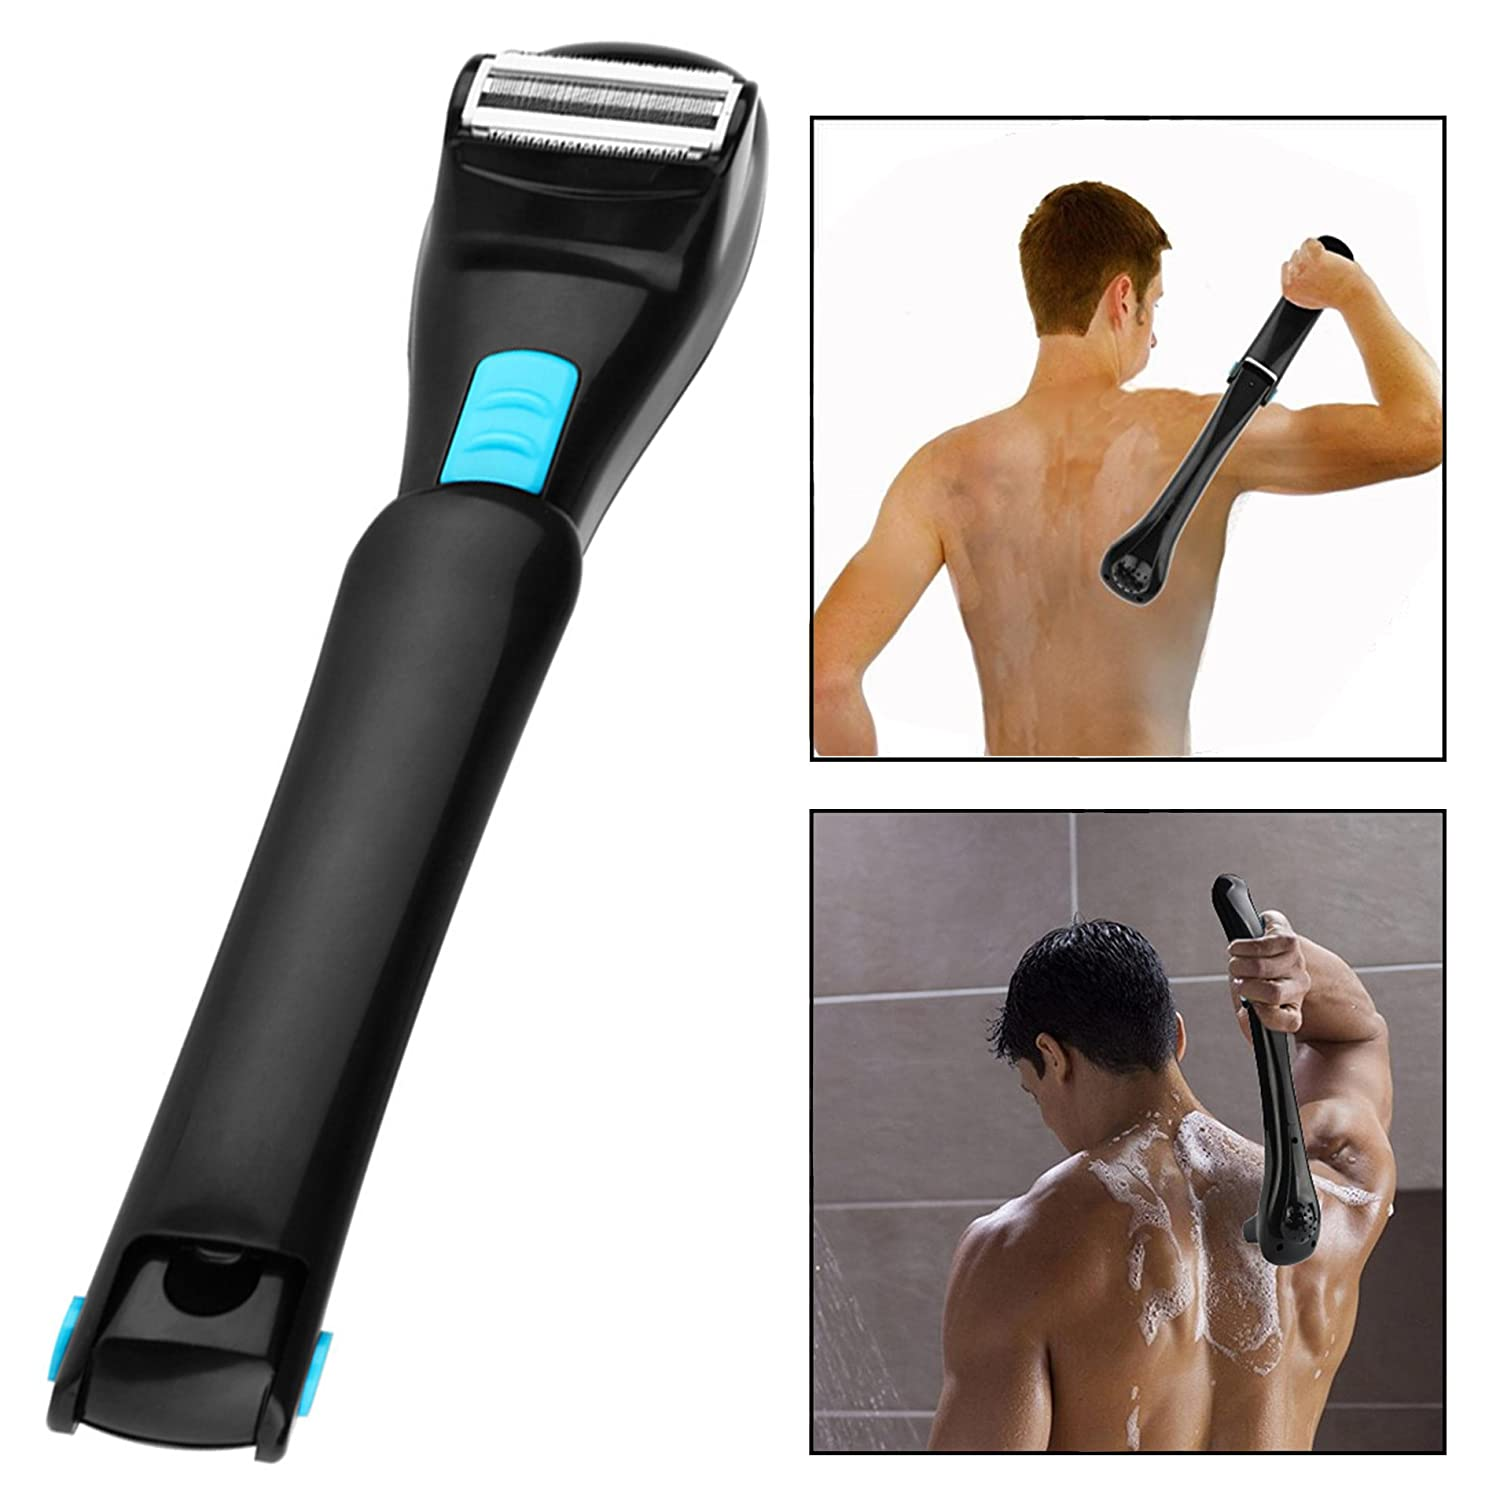 OFKP Portable Back Electric Shaver, Groomer Shaving Do-It-Yourself Electric Back Razor Body Hair Trimmer